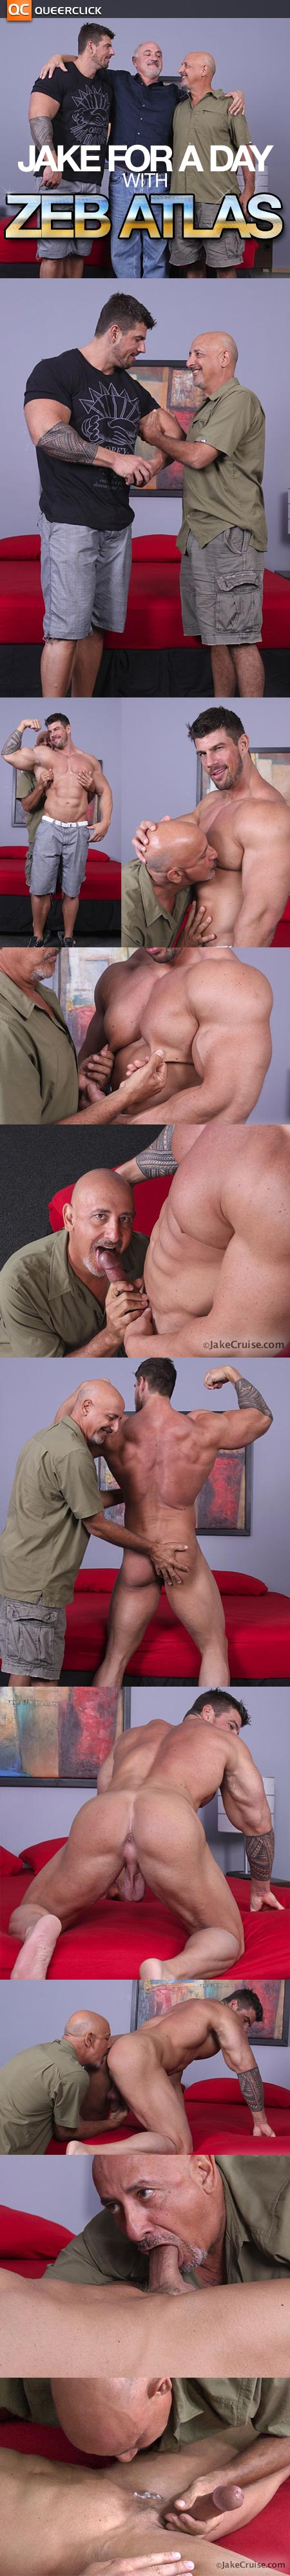 Jake for a Day with Zeb Atlas